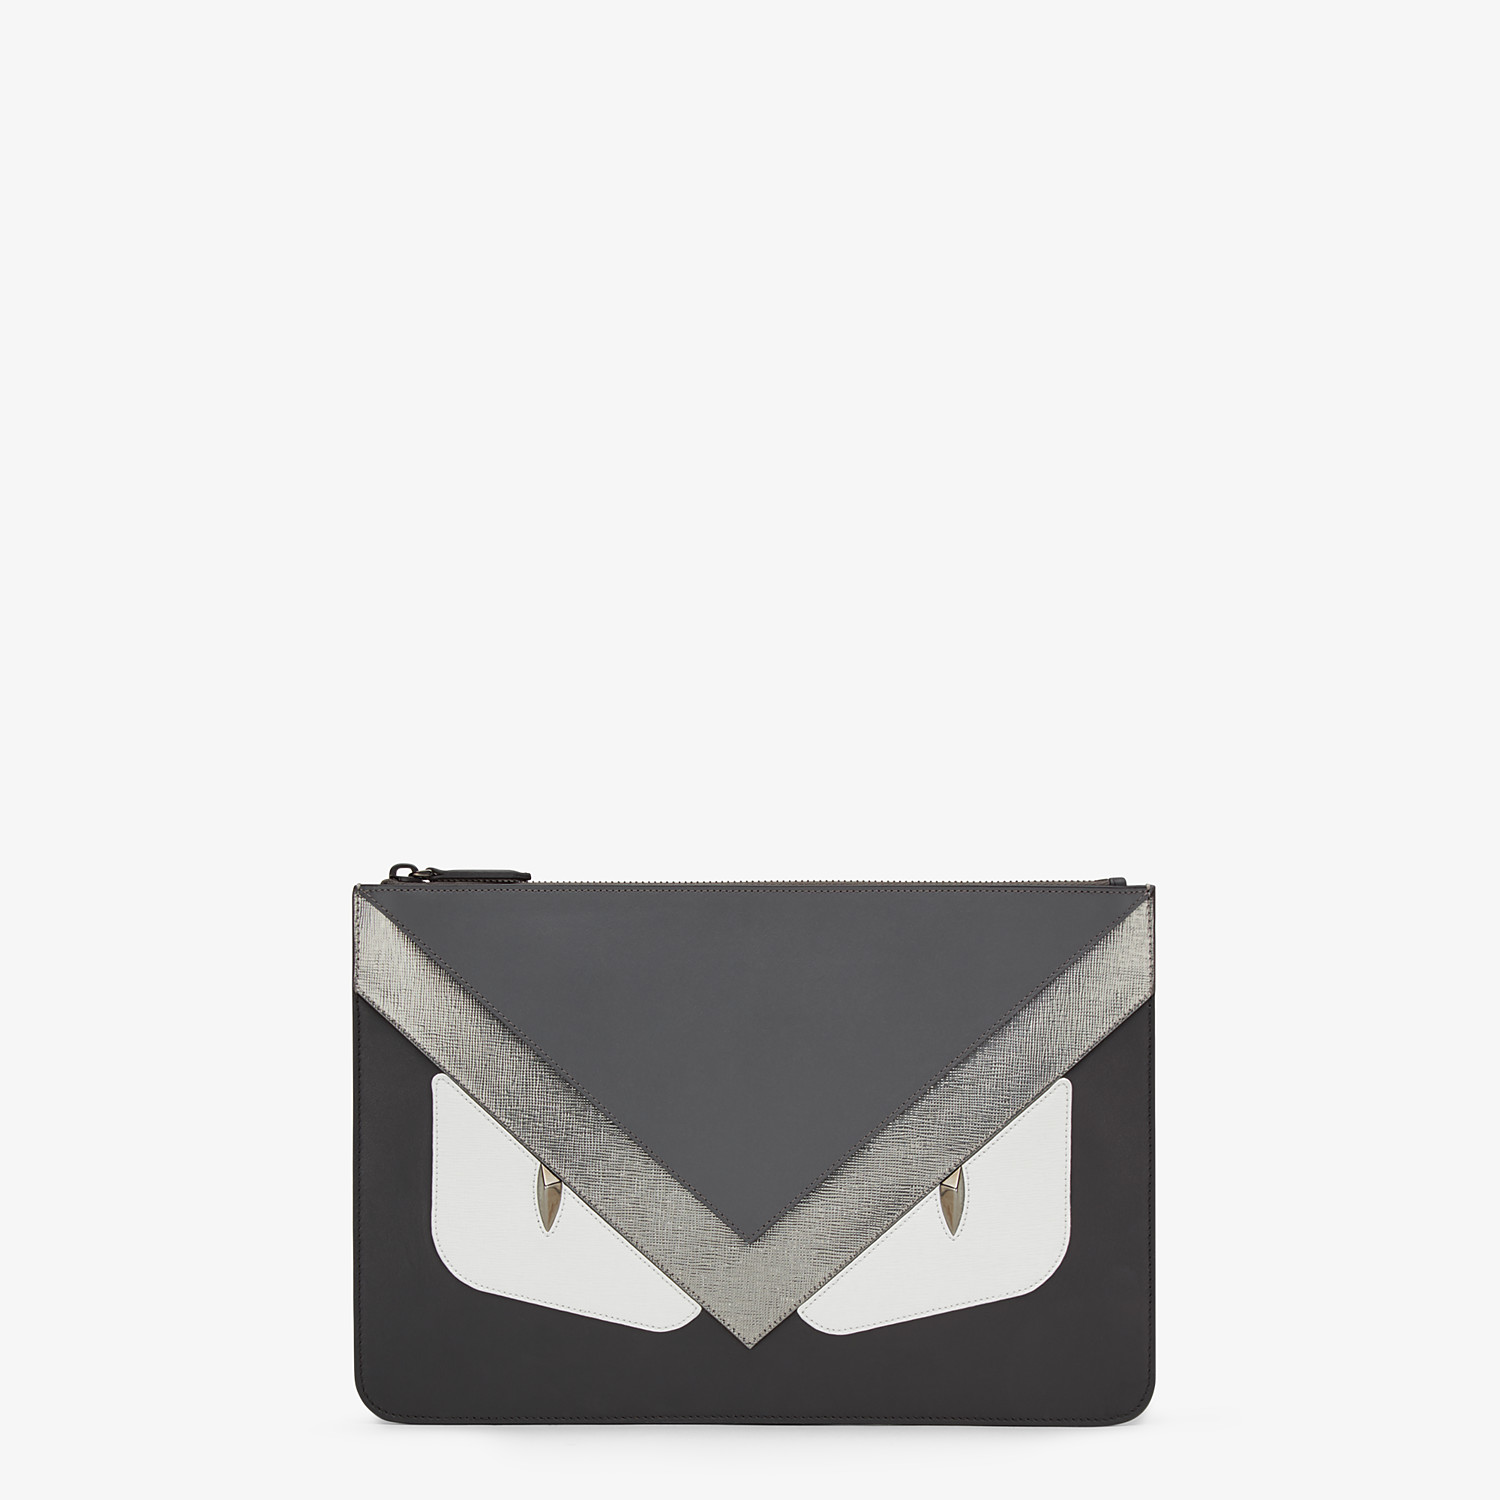 FENDI POUCH - in black Roman leather with insert - view 1 detail